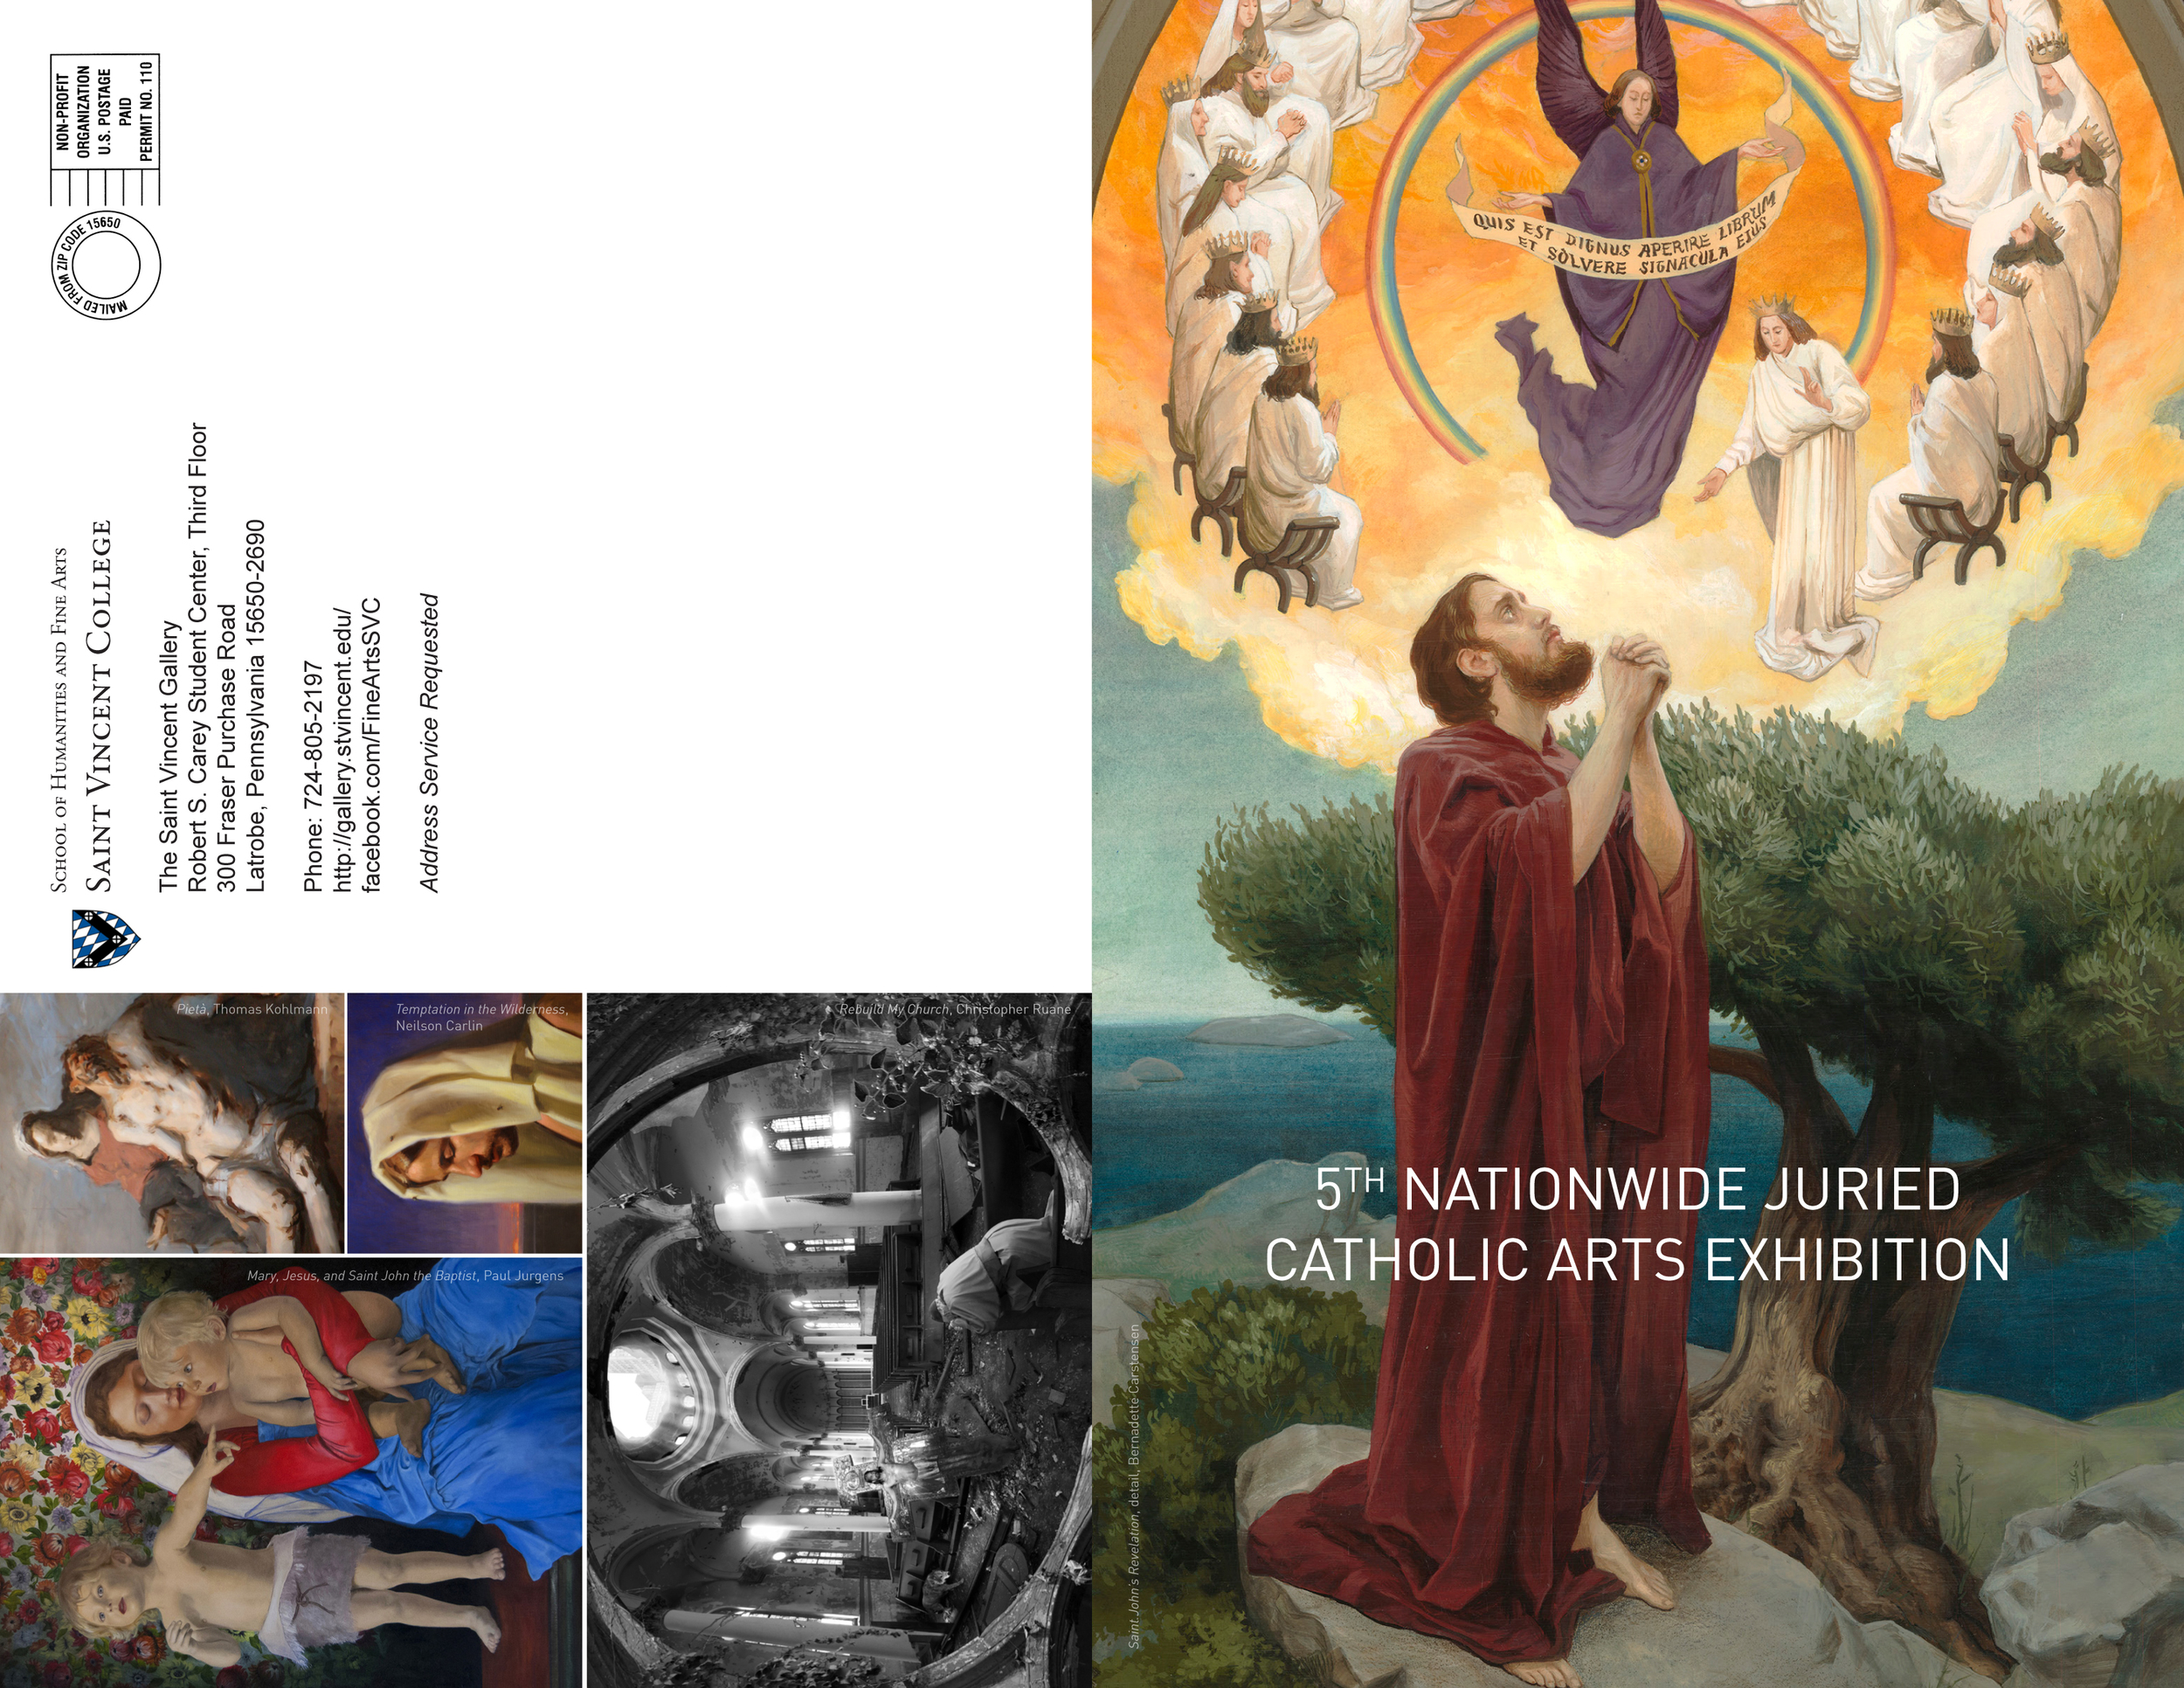 Catholic_Art_Announcement_2014-1.jpg